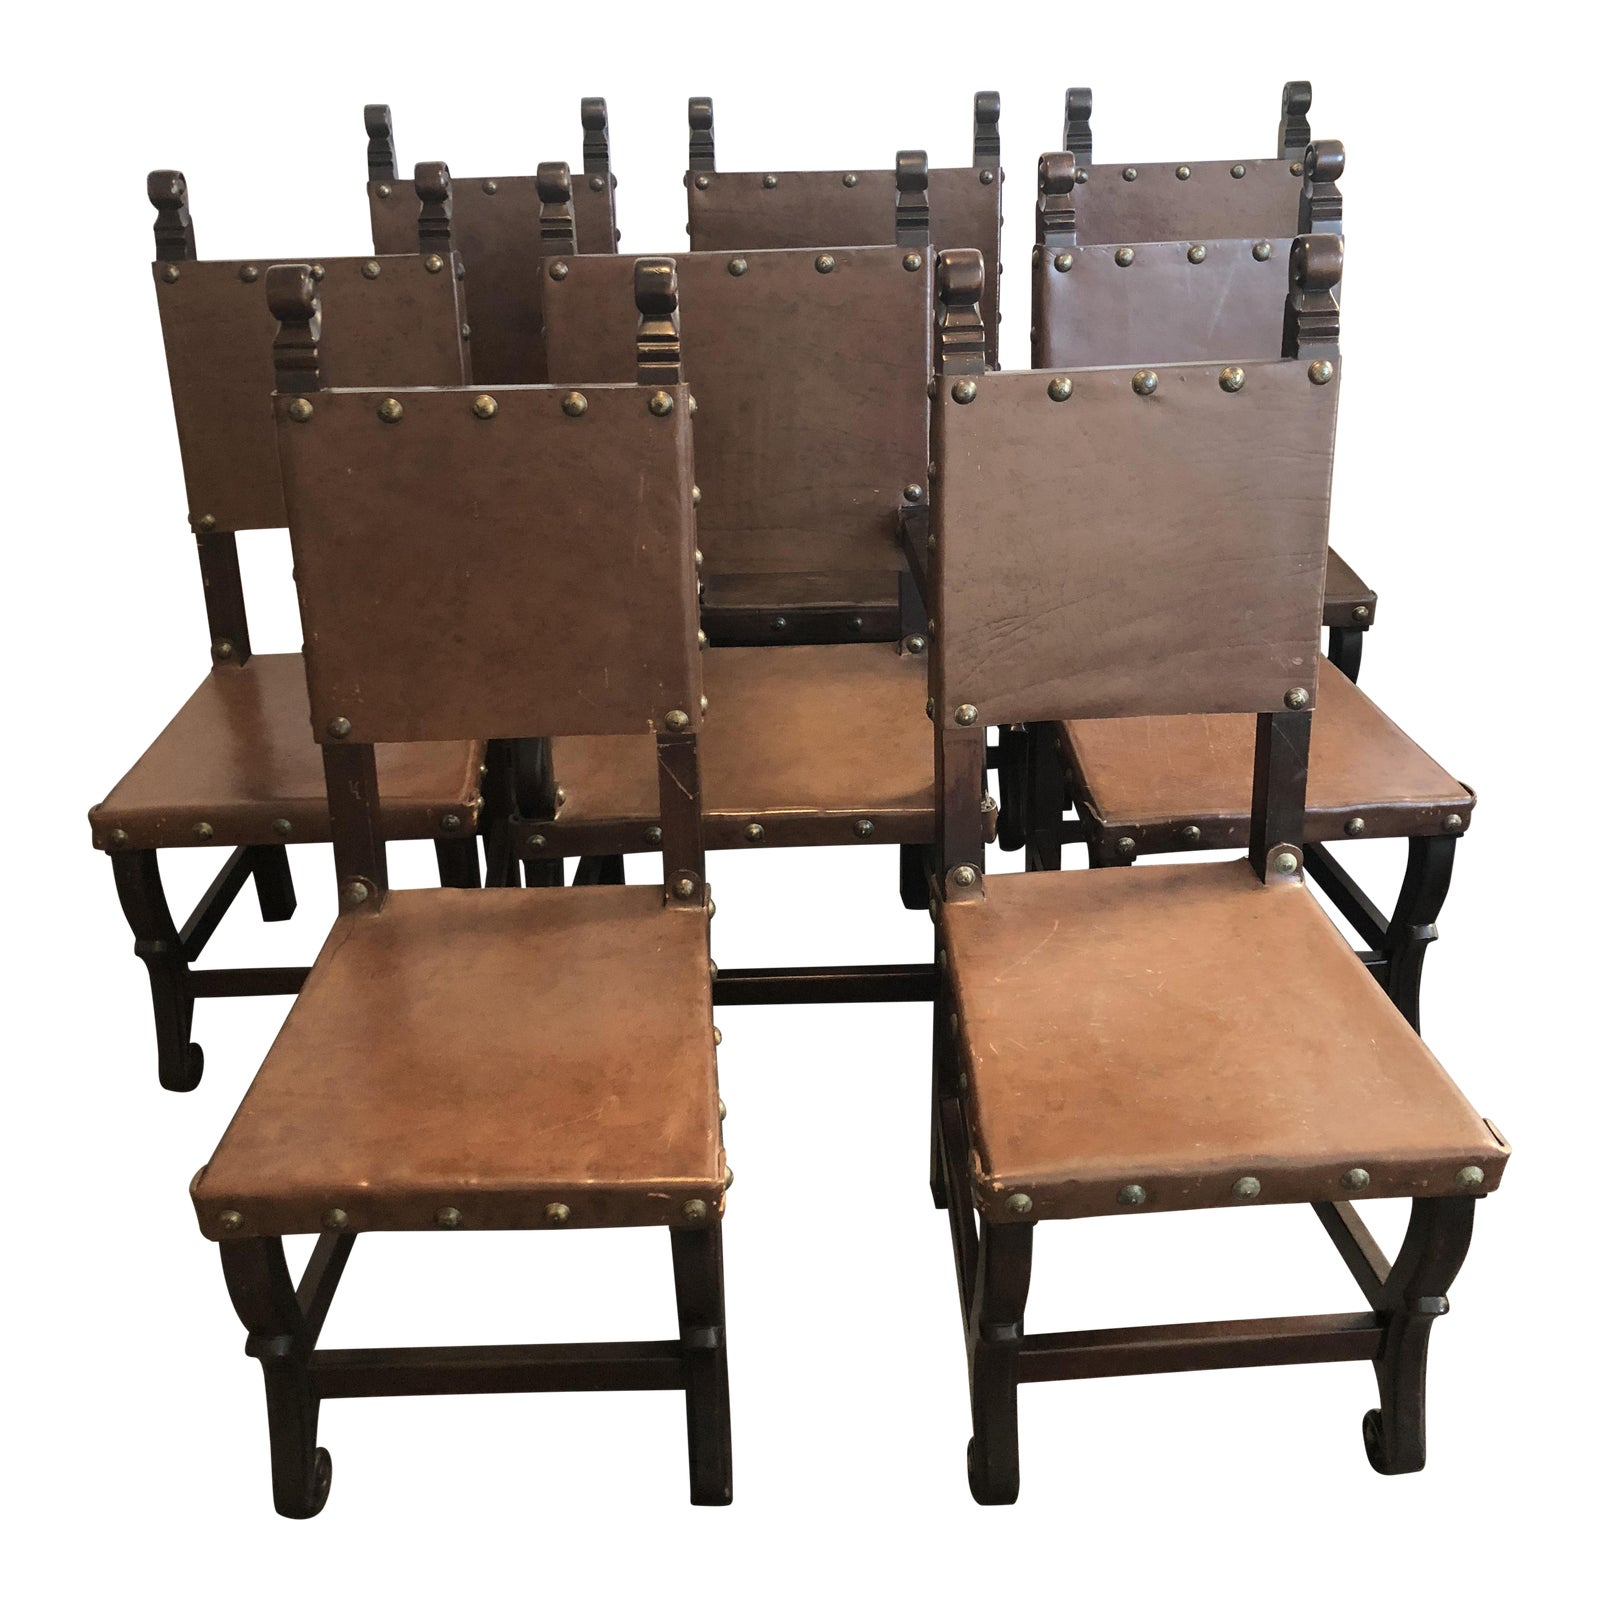 Spanish Style Dining Room Furniture: Rustic Spanish Style Leather/Hardwood Dining Chairs